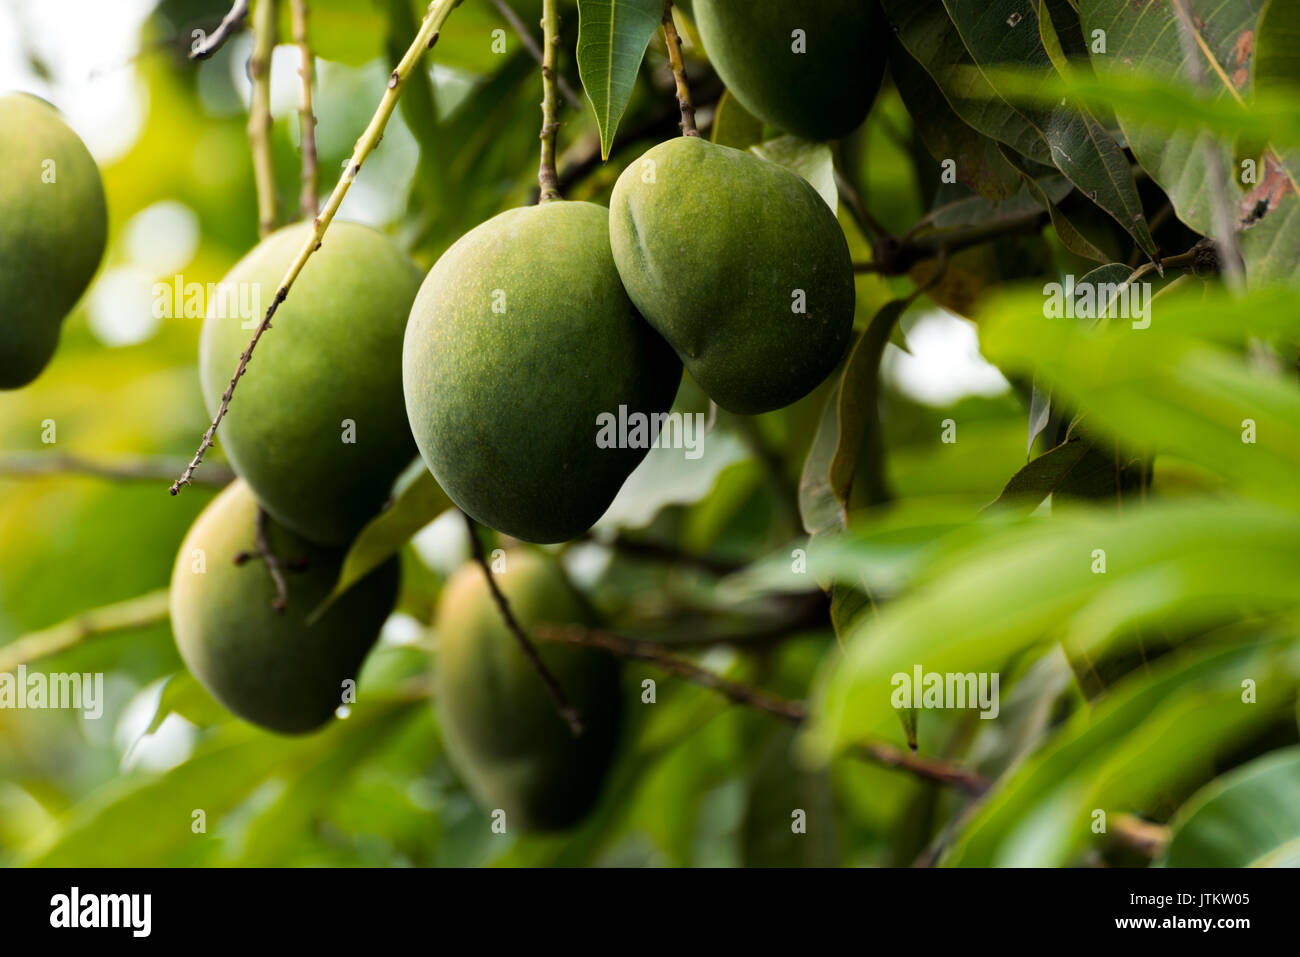 how to know when a green mango is ripe